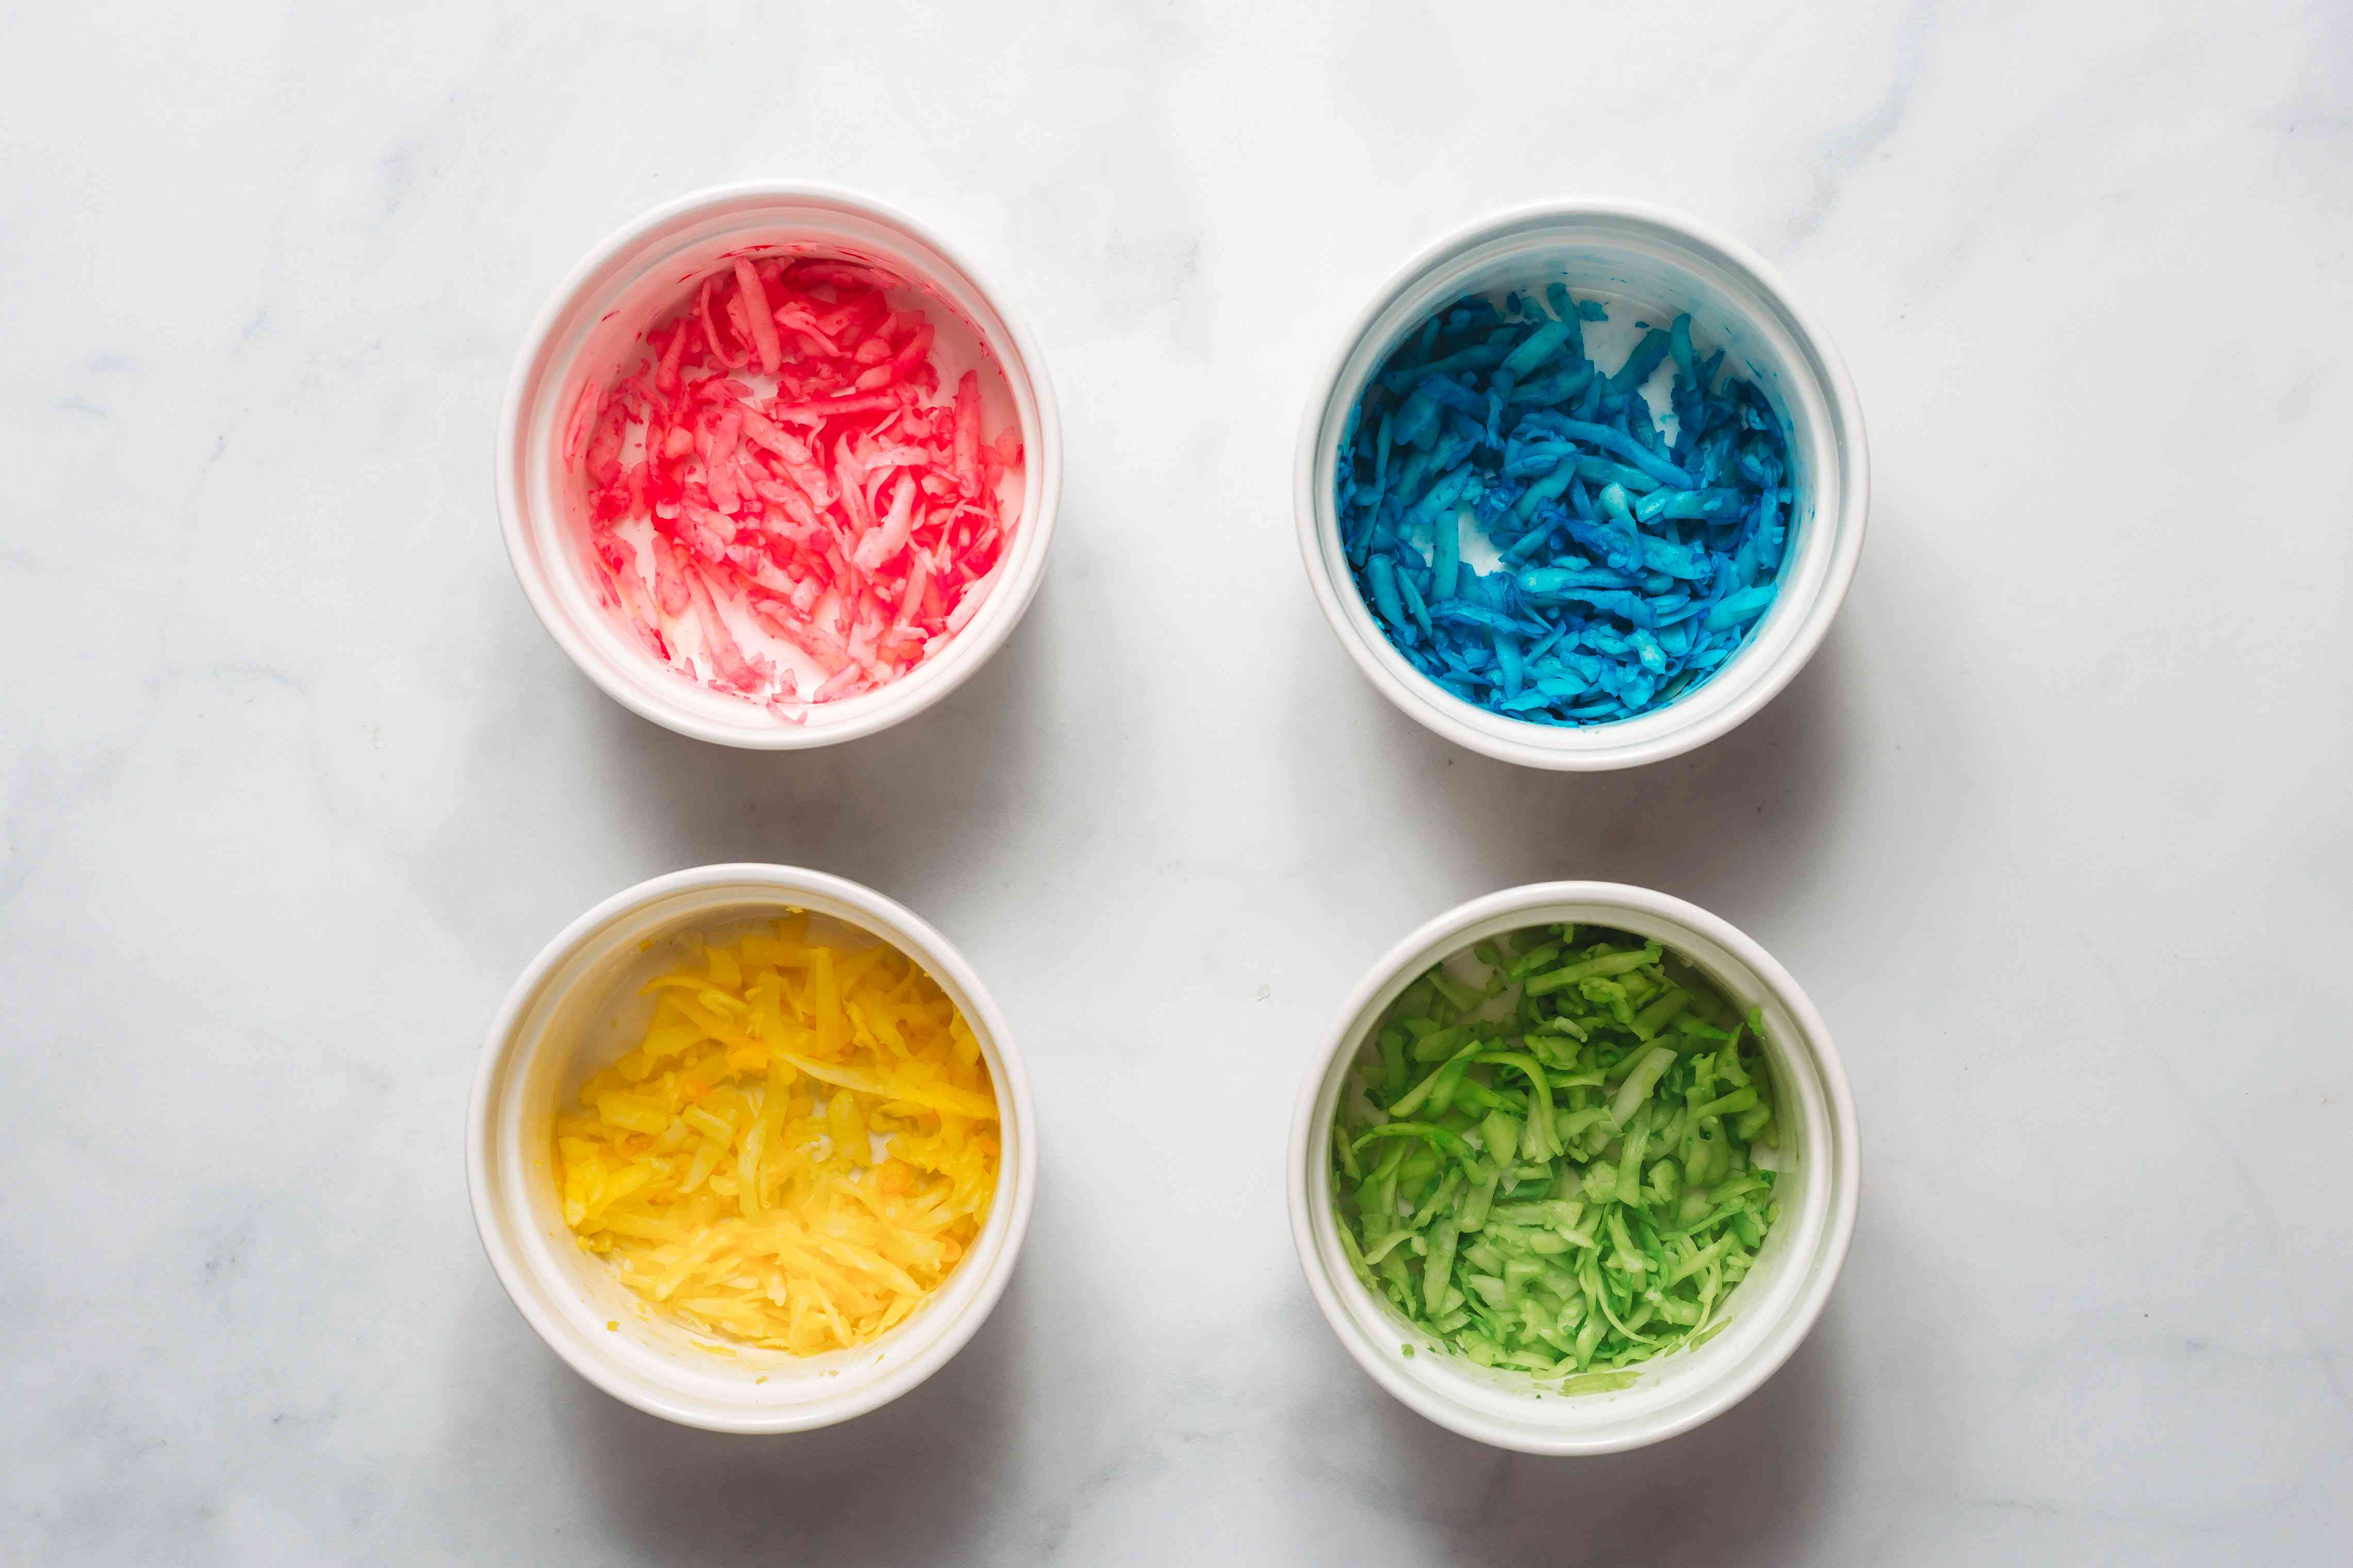 pink, blue, yellow and green died cheese in bowls